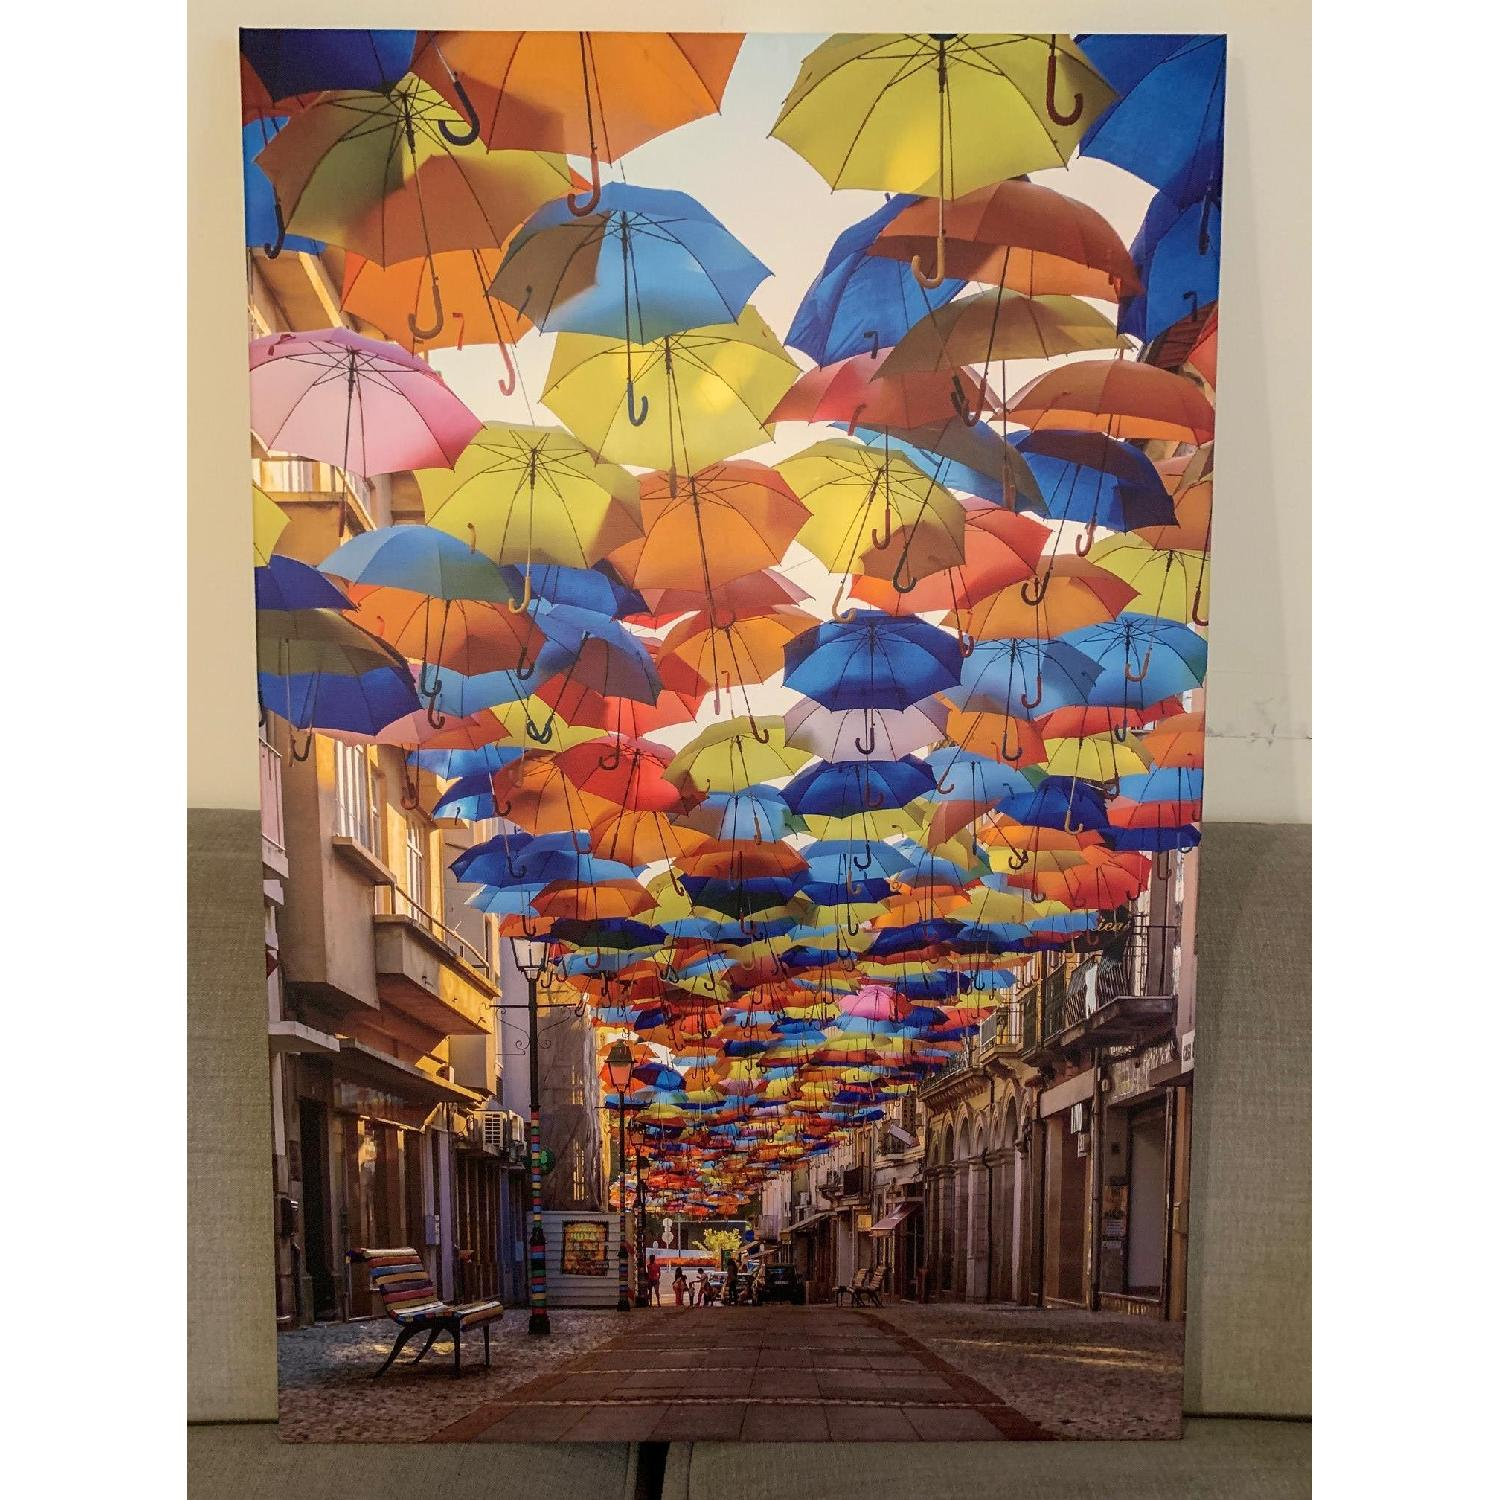 Colorful Floating Umbrellas Canvas Print - image-1